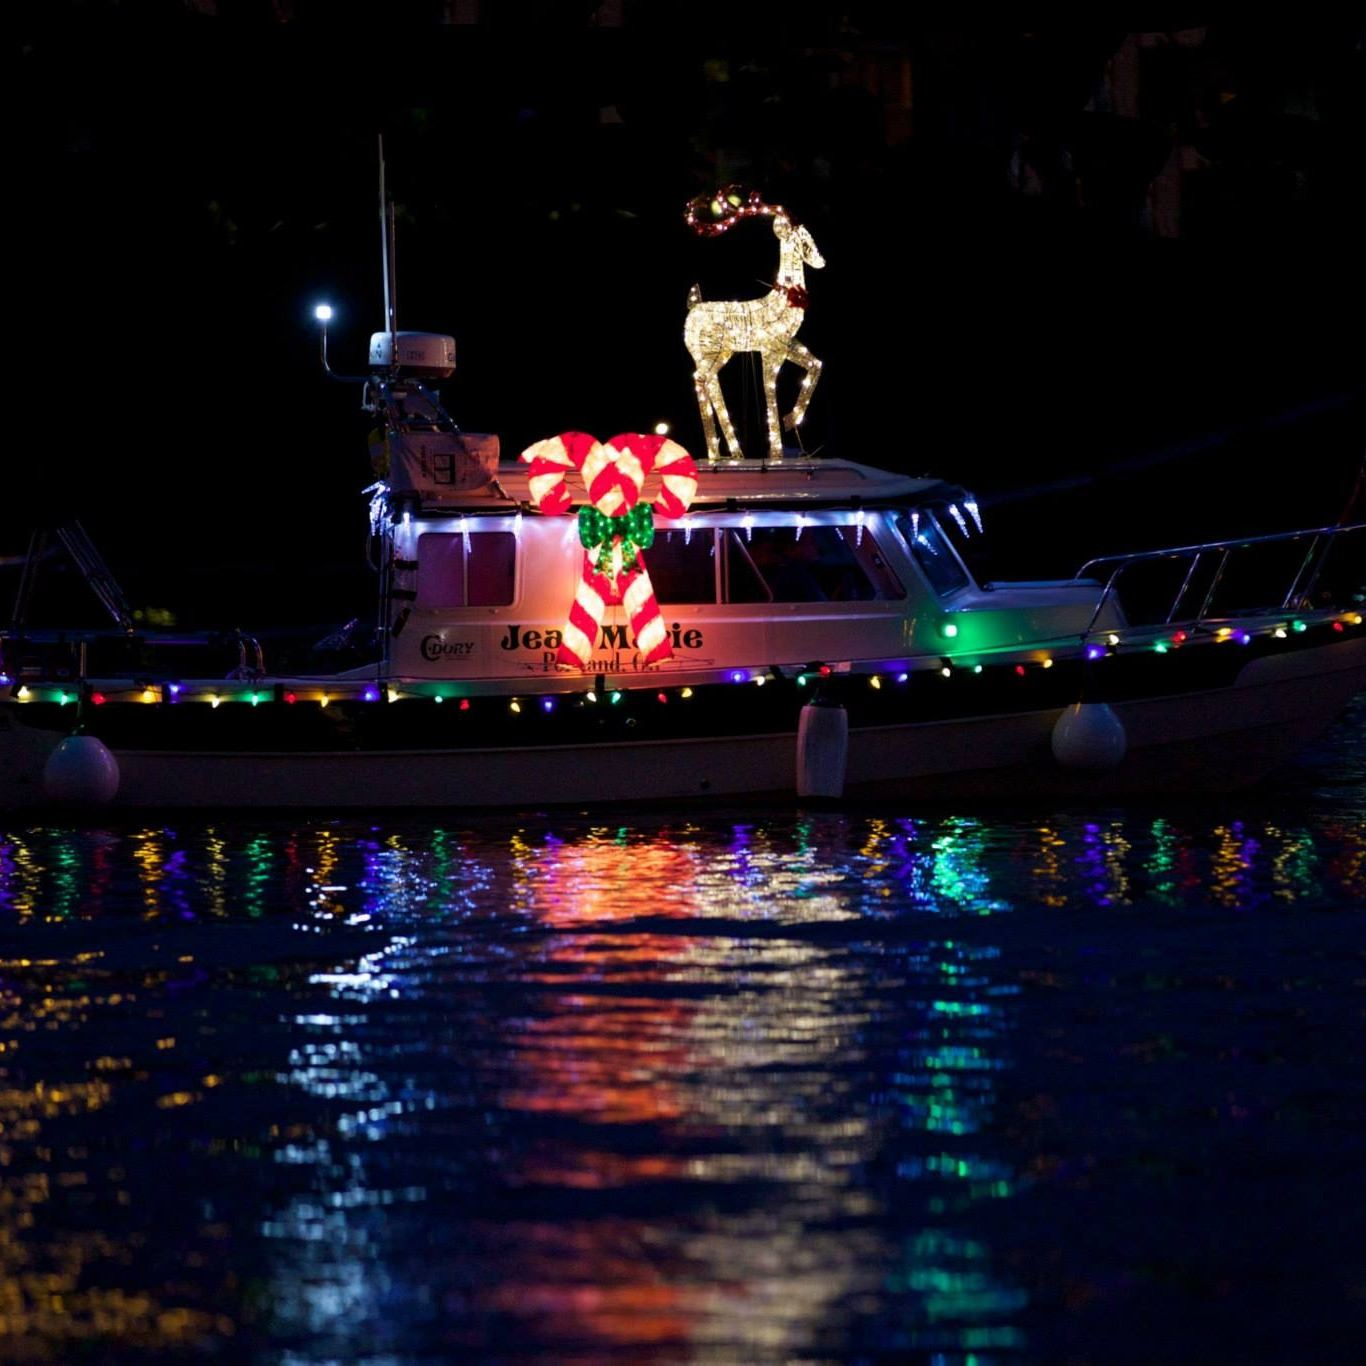 Ships lit with holiday lights on the Columbia River